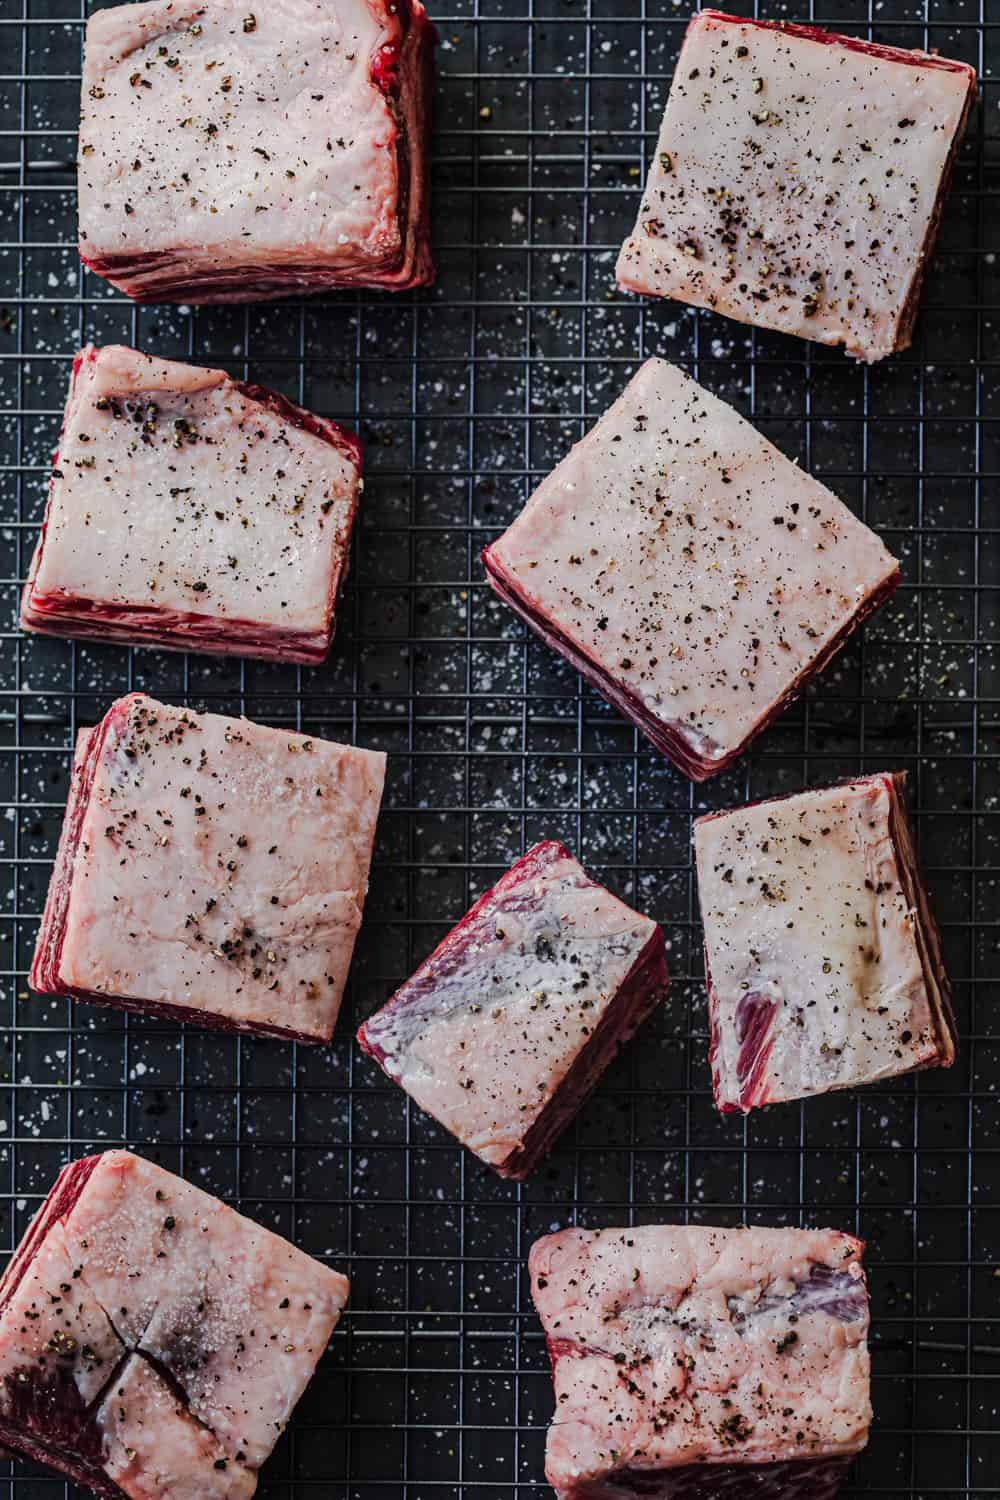 ingredient shot: raw short ribs, seasoned with salt and pepper, on a wire rack on a baking tray.